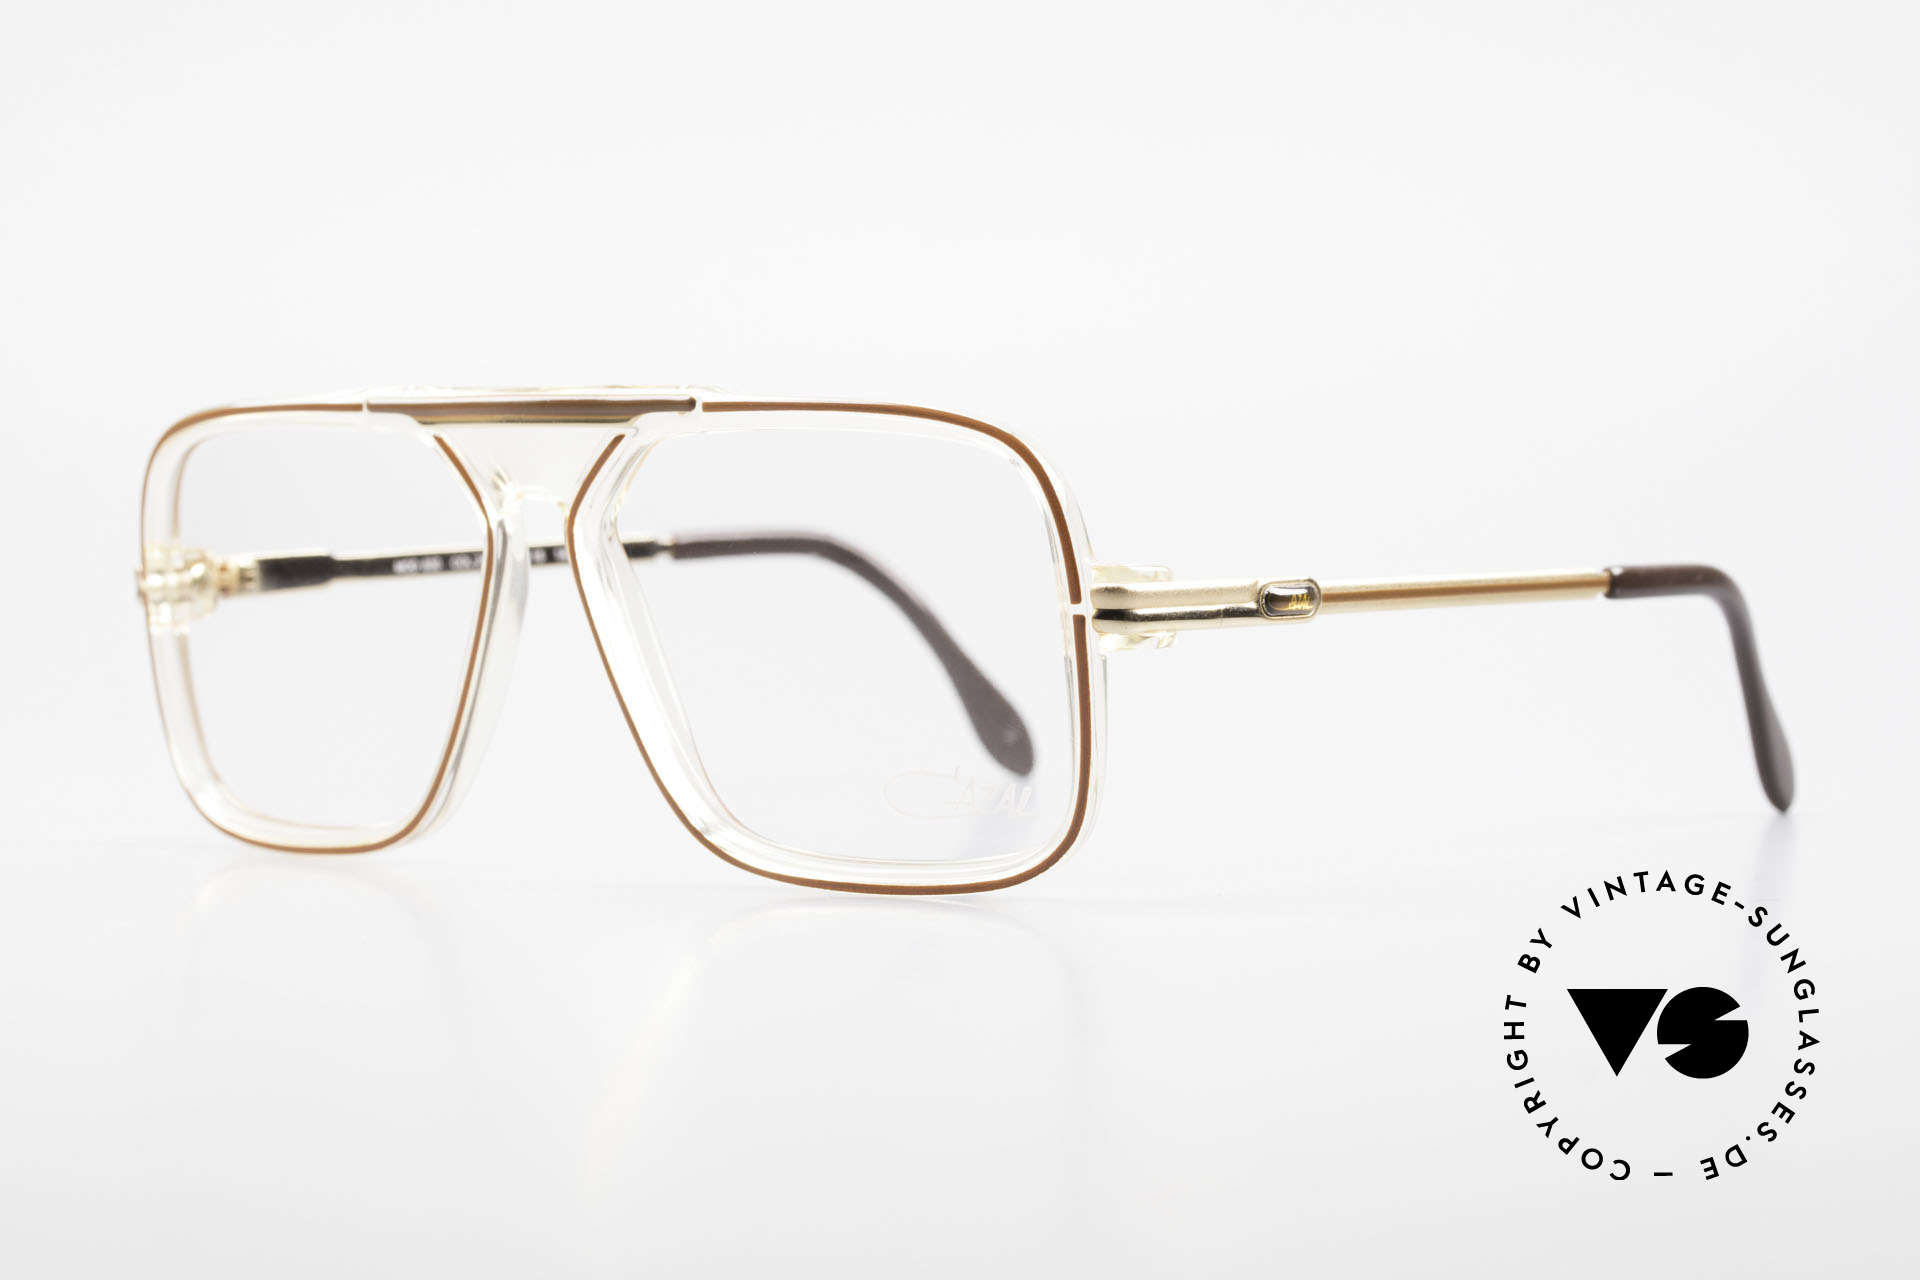 Cazal 630 Old 80's Hip Hop Cazal Glasses, a true rarity & hard to find (collector's item), Made for Men